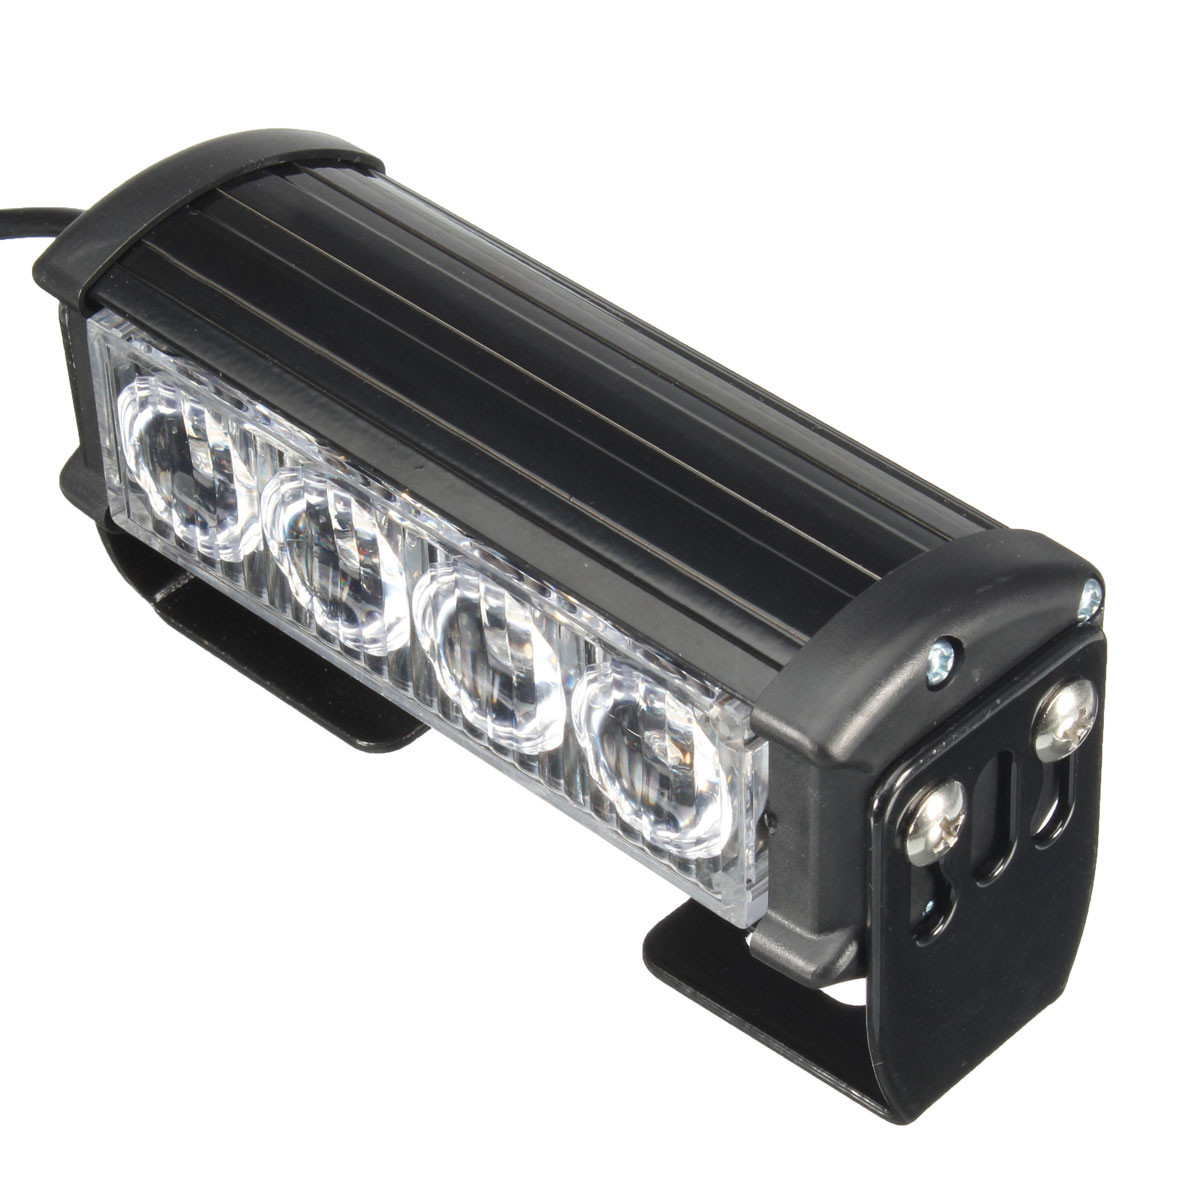 Danger Eclairage Led Paire 12v 4 Led Flash Stroboscopique Clignotant Danger